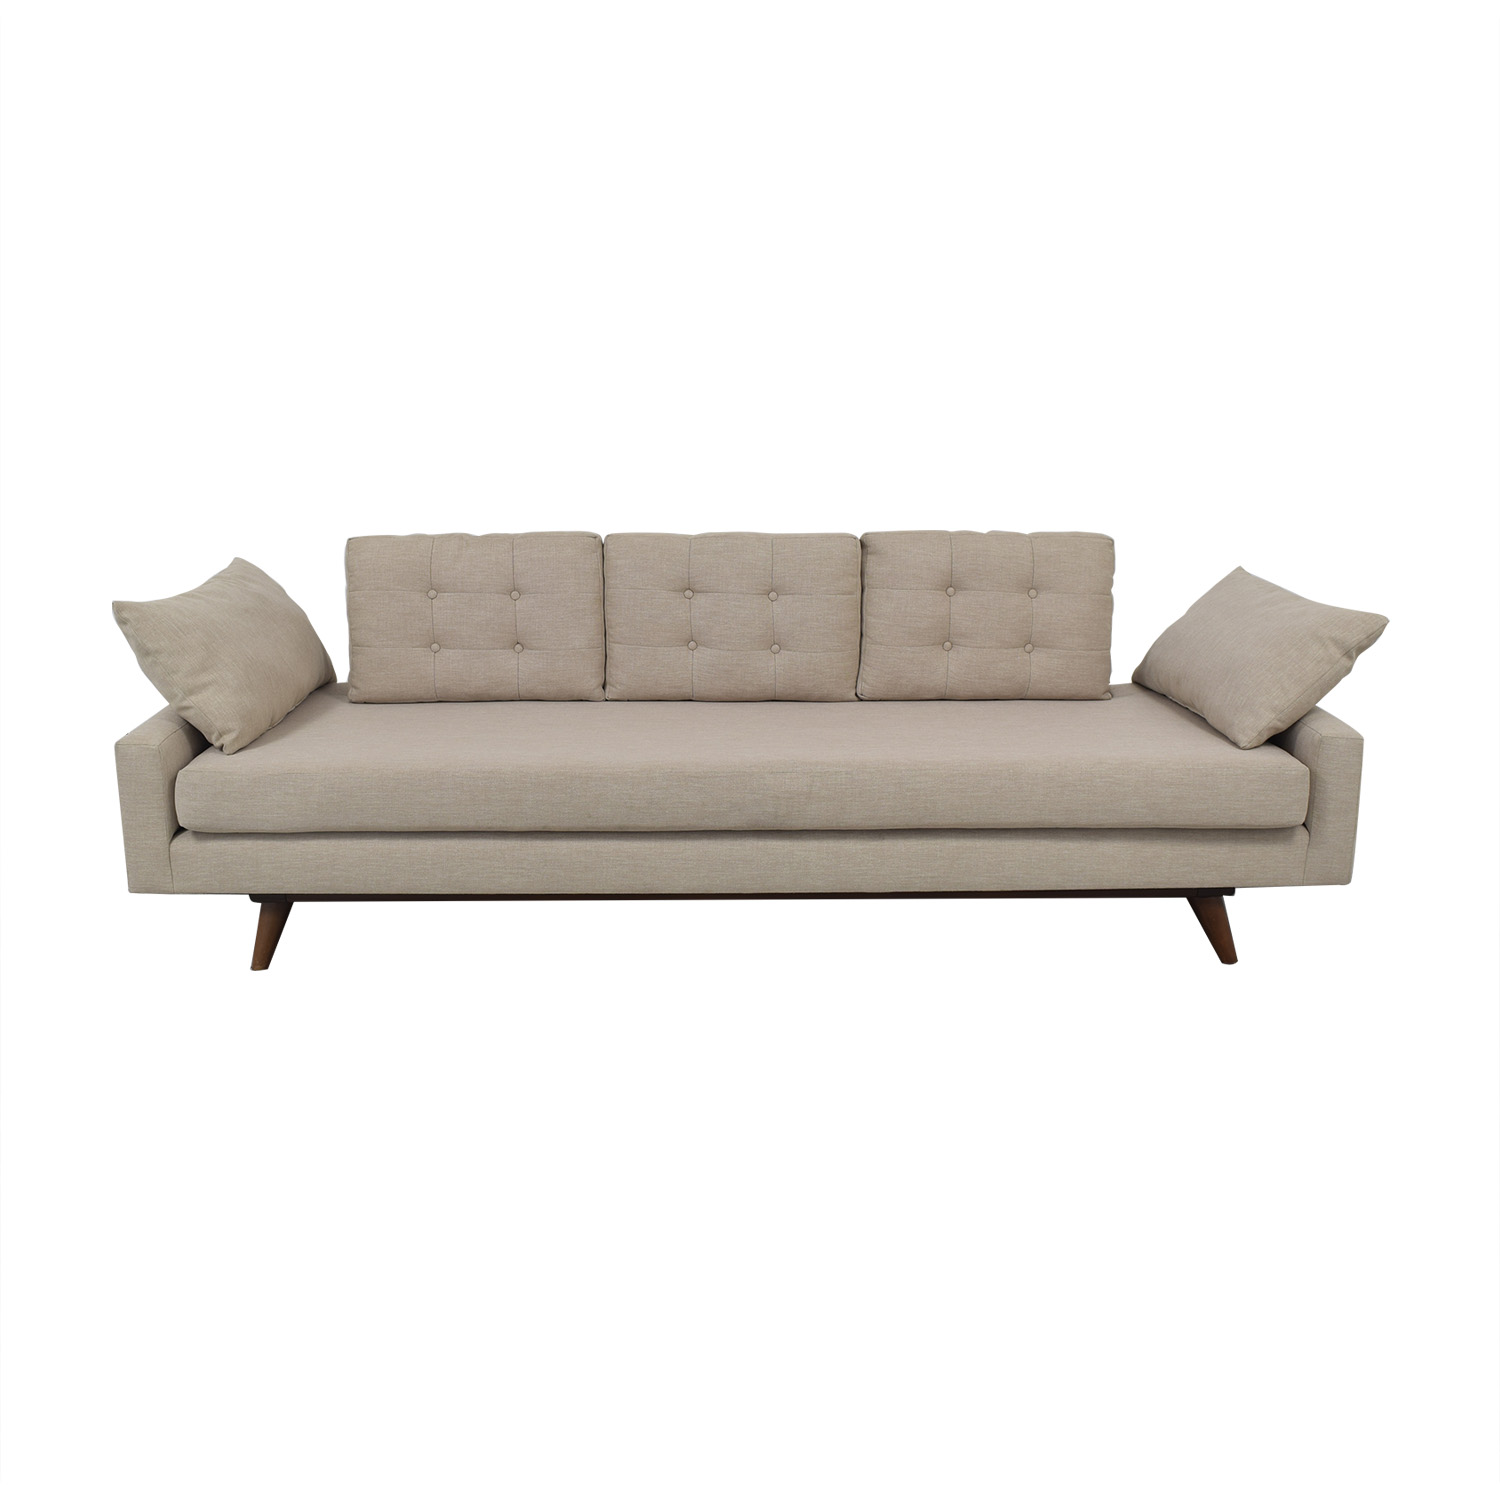 Thrive Furniture Mid-Century Sofa / Classic Sofas